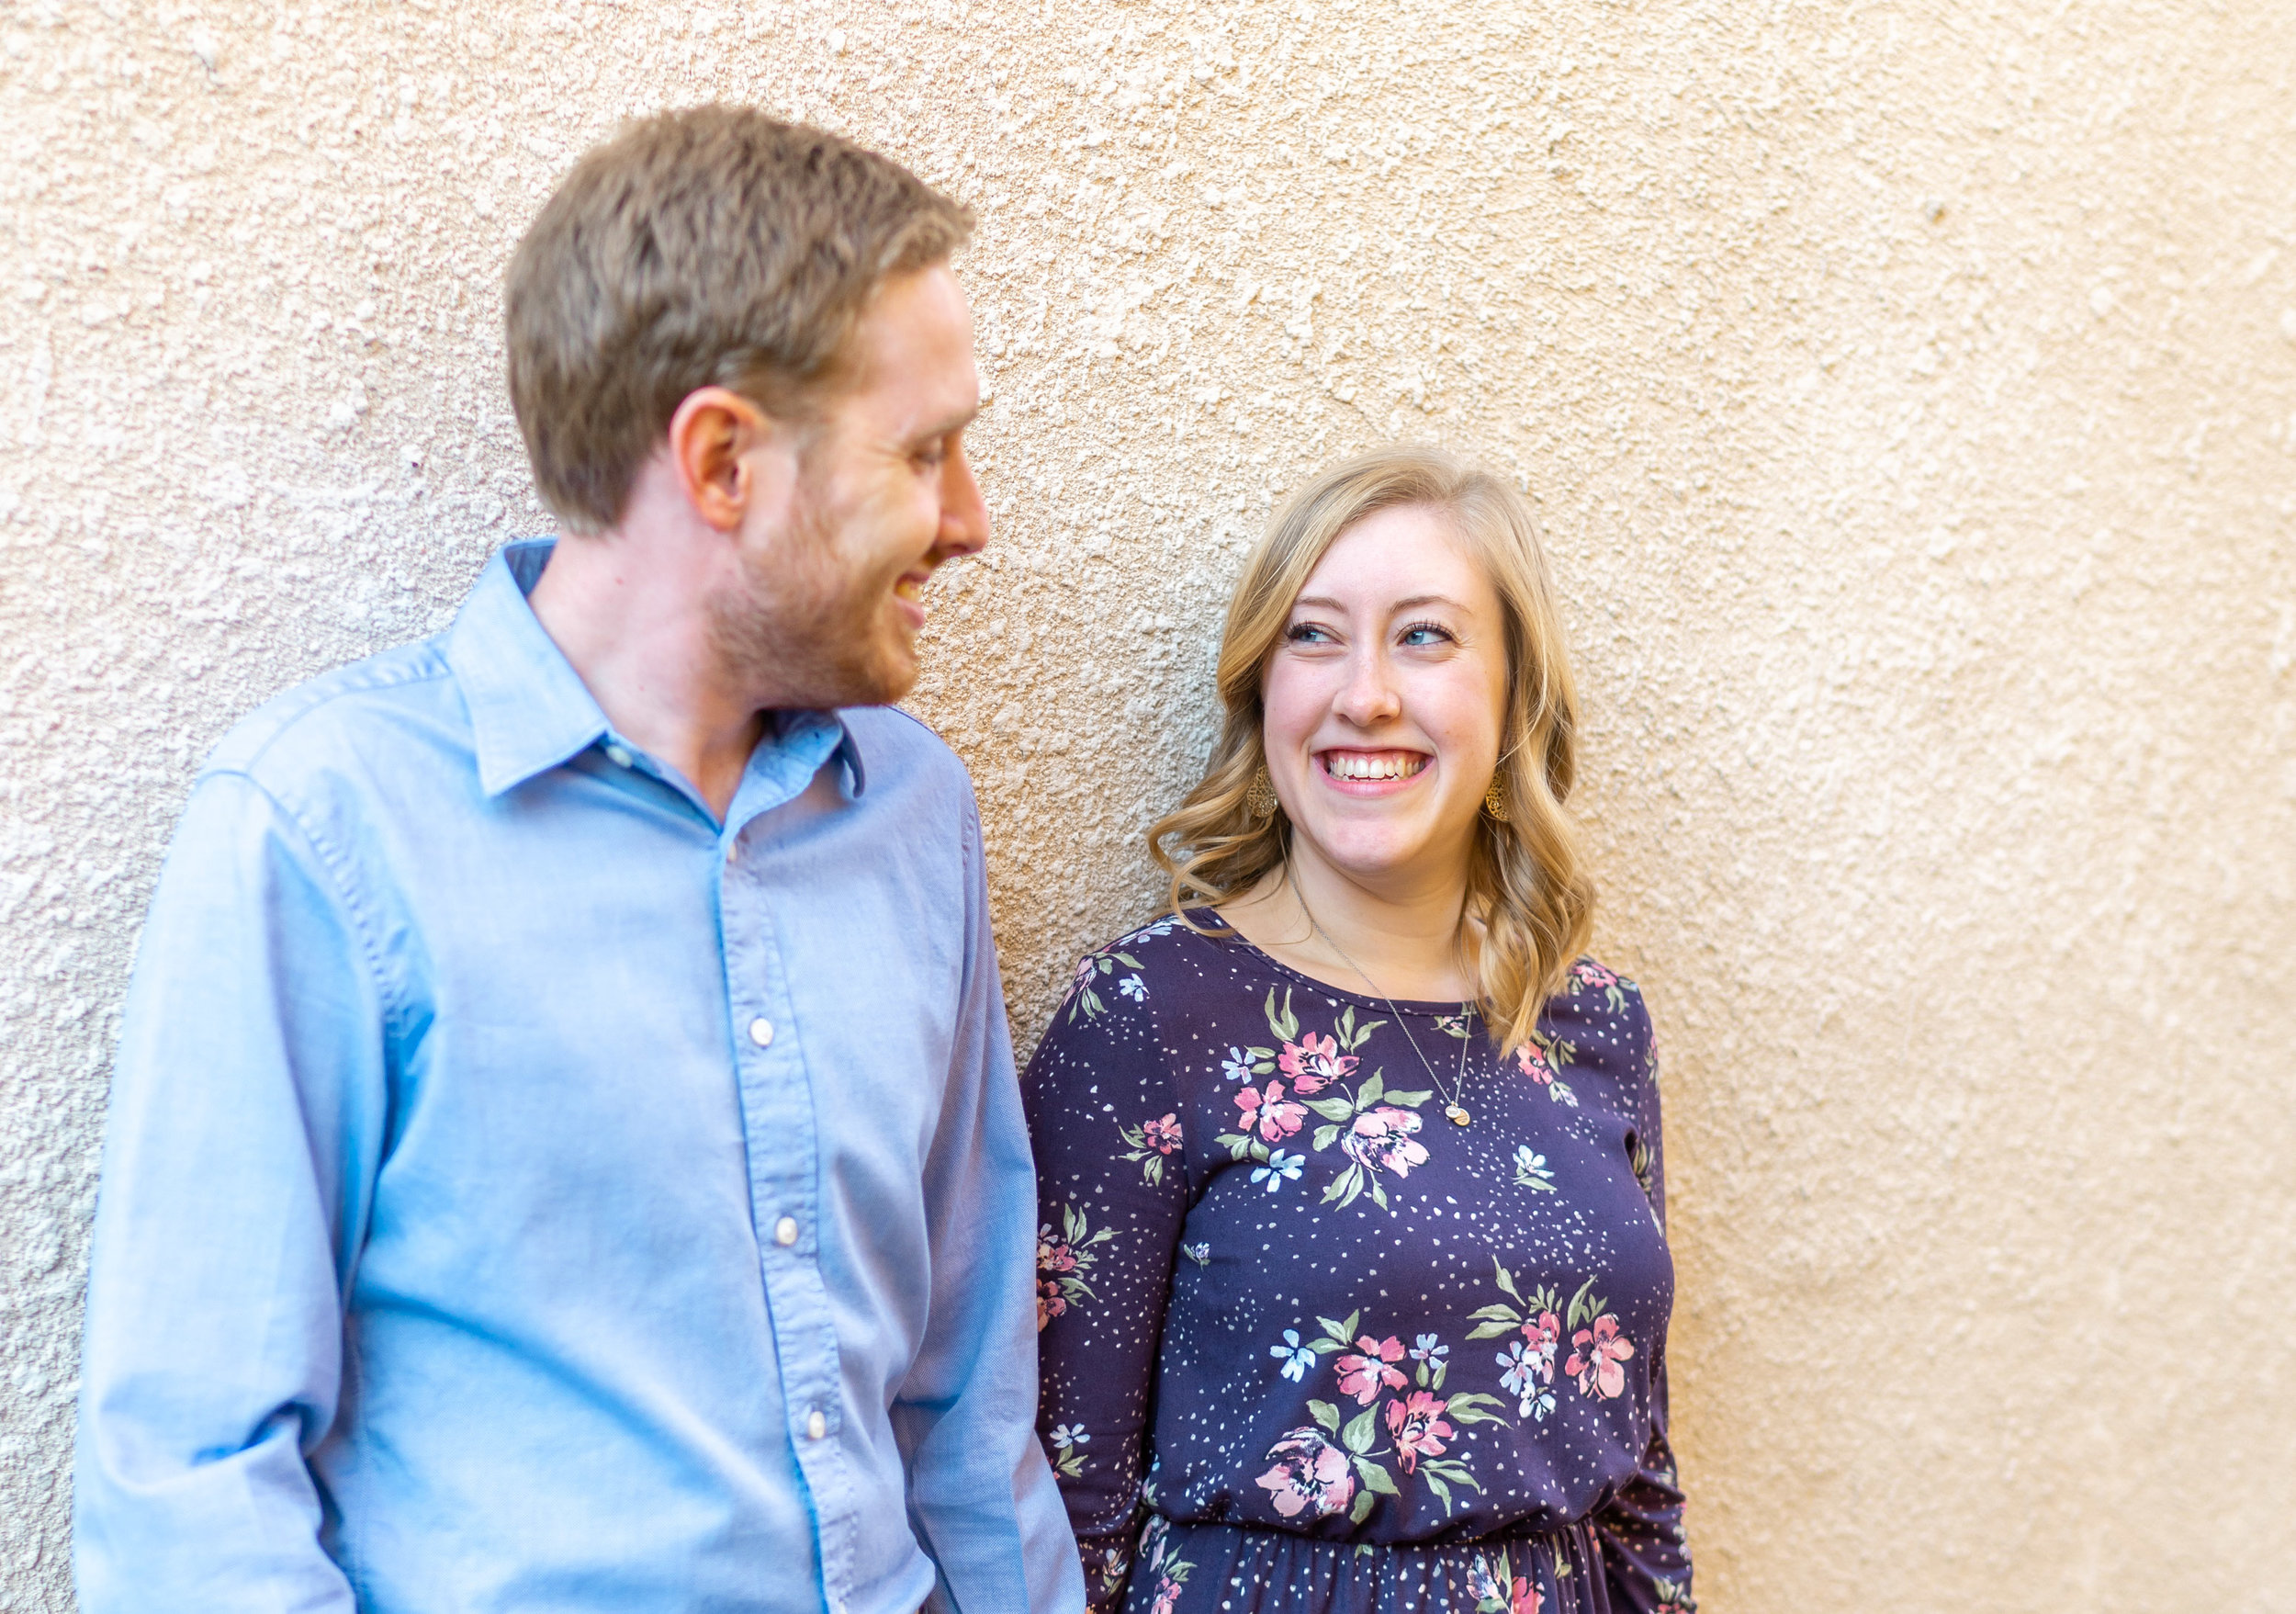 Bride and groom engagement session in front of stucco wall